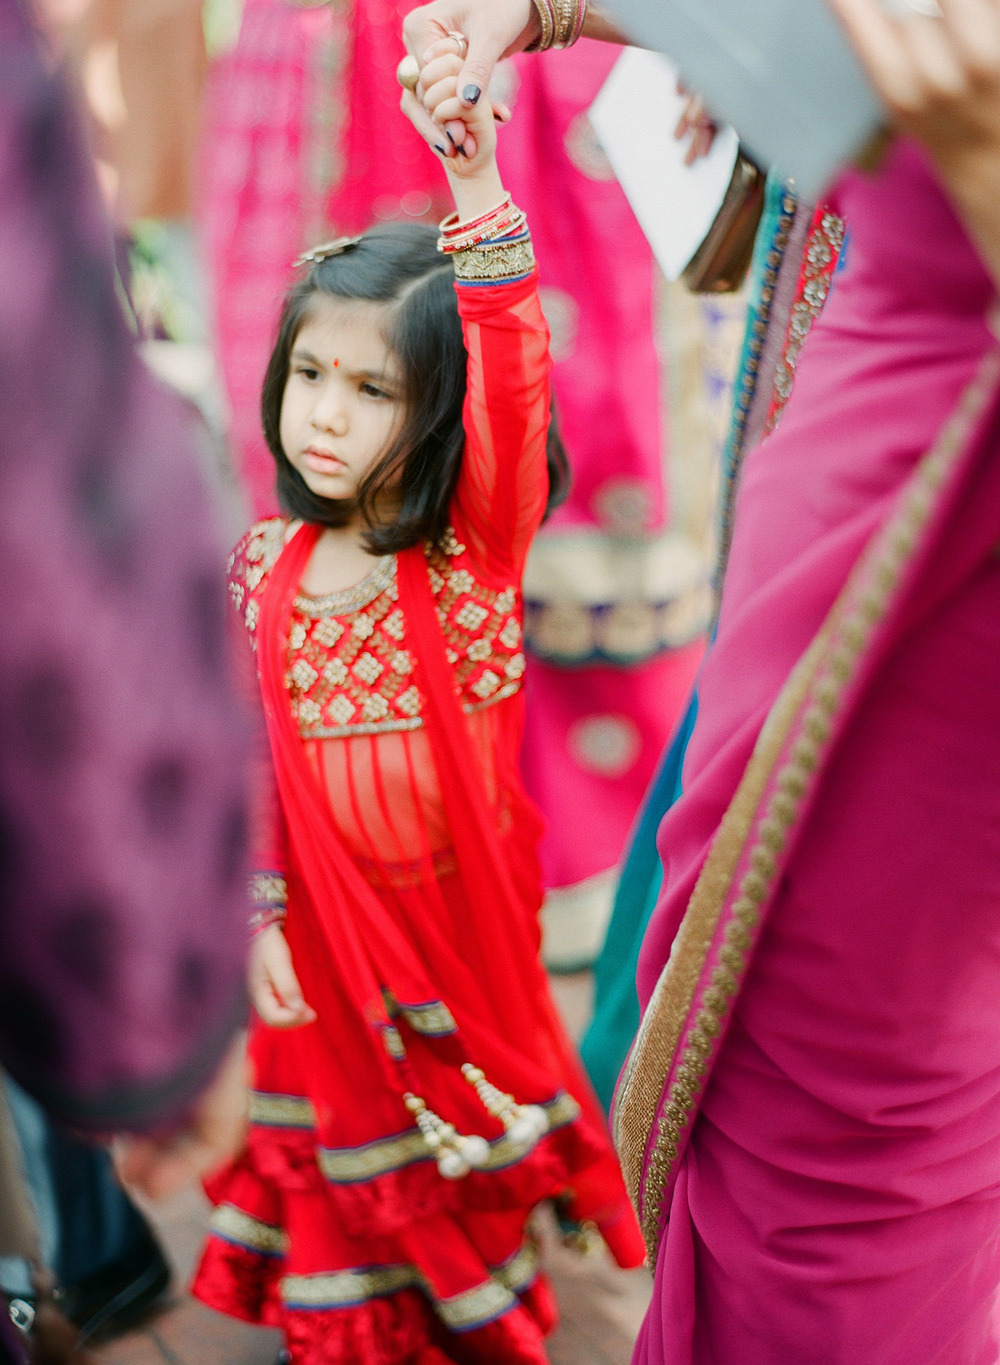 a little girl hold's her mother's hand during the parade at this Indian Wedding in Florida photographed by Destination Wedding Photographer, LExia Frank - a top indian wedding photographer - who shoots film for luxury indian weddings preferring the soft skin tones and vibrant colors for indian weddings in india and worldwide